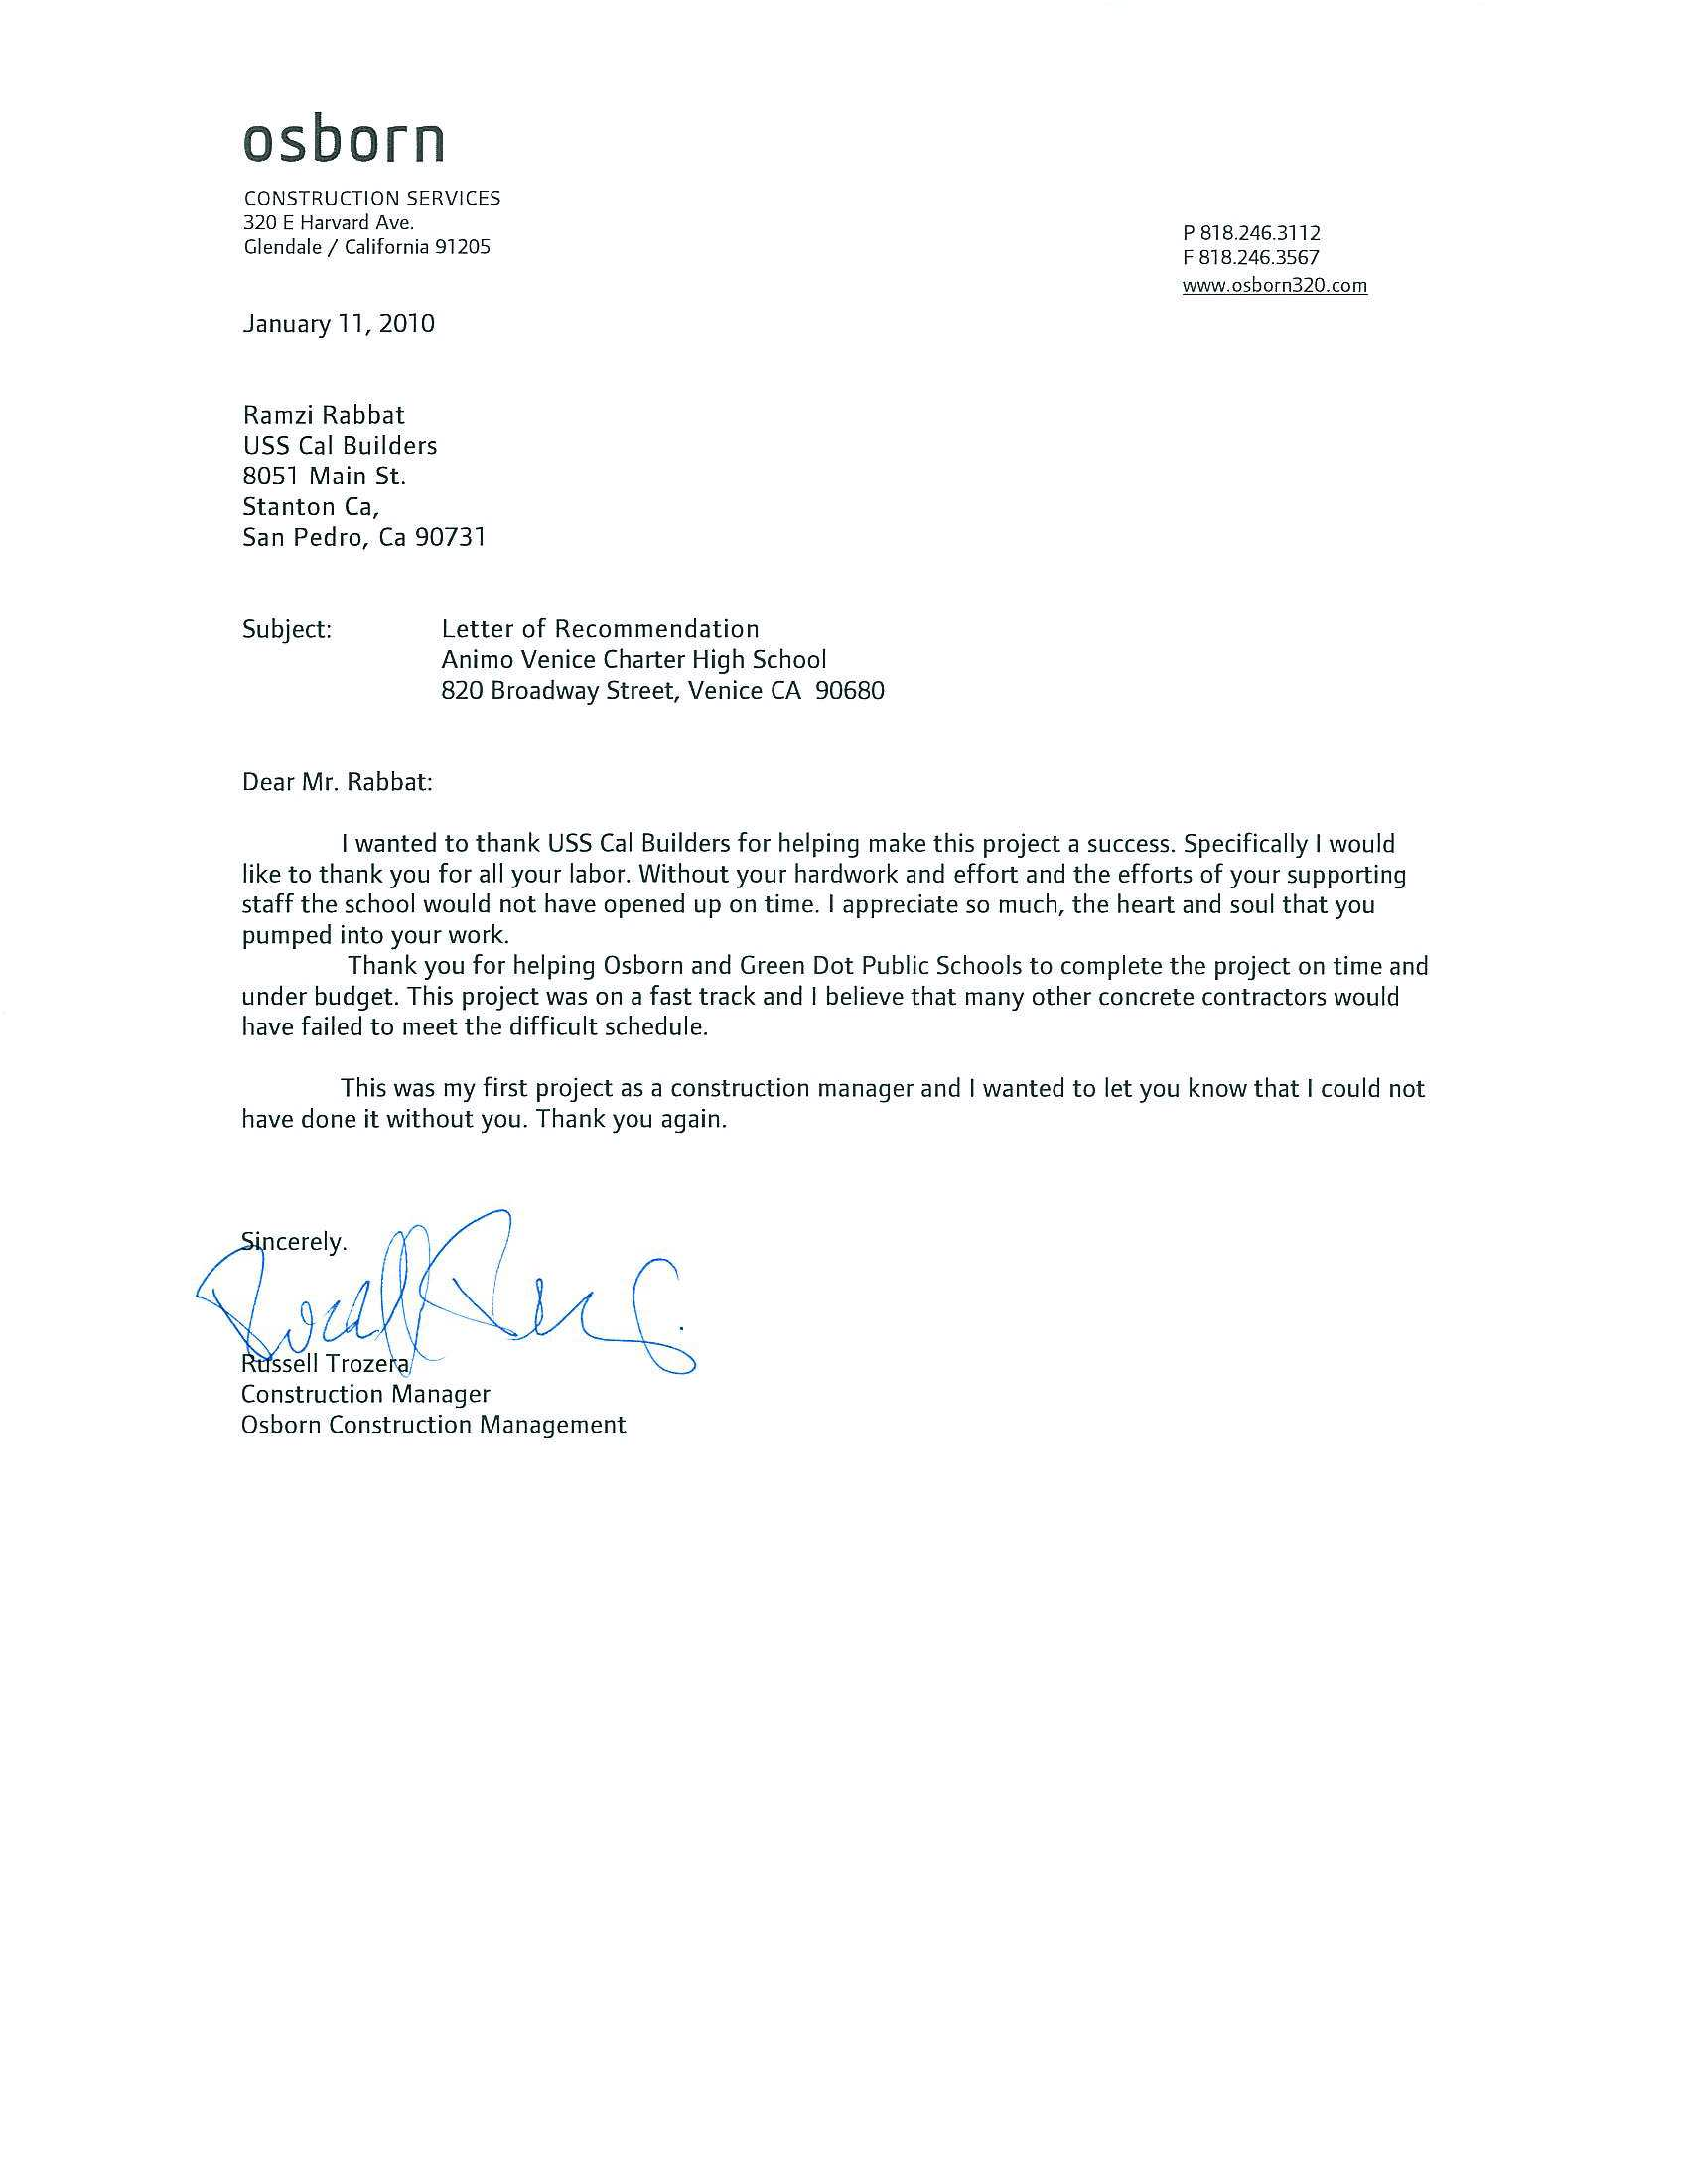 Free Recommendation Letter Download – Job Reference Letter Template